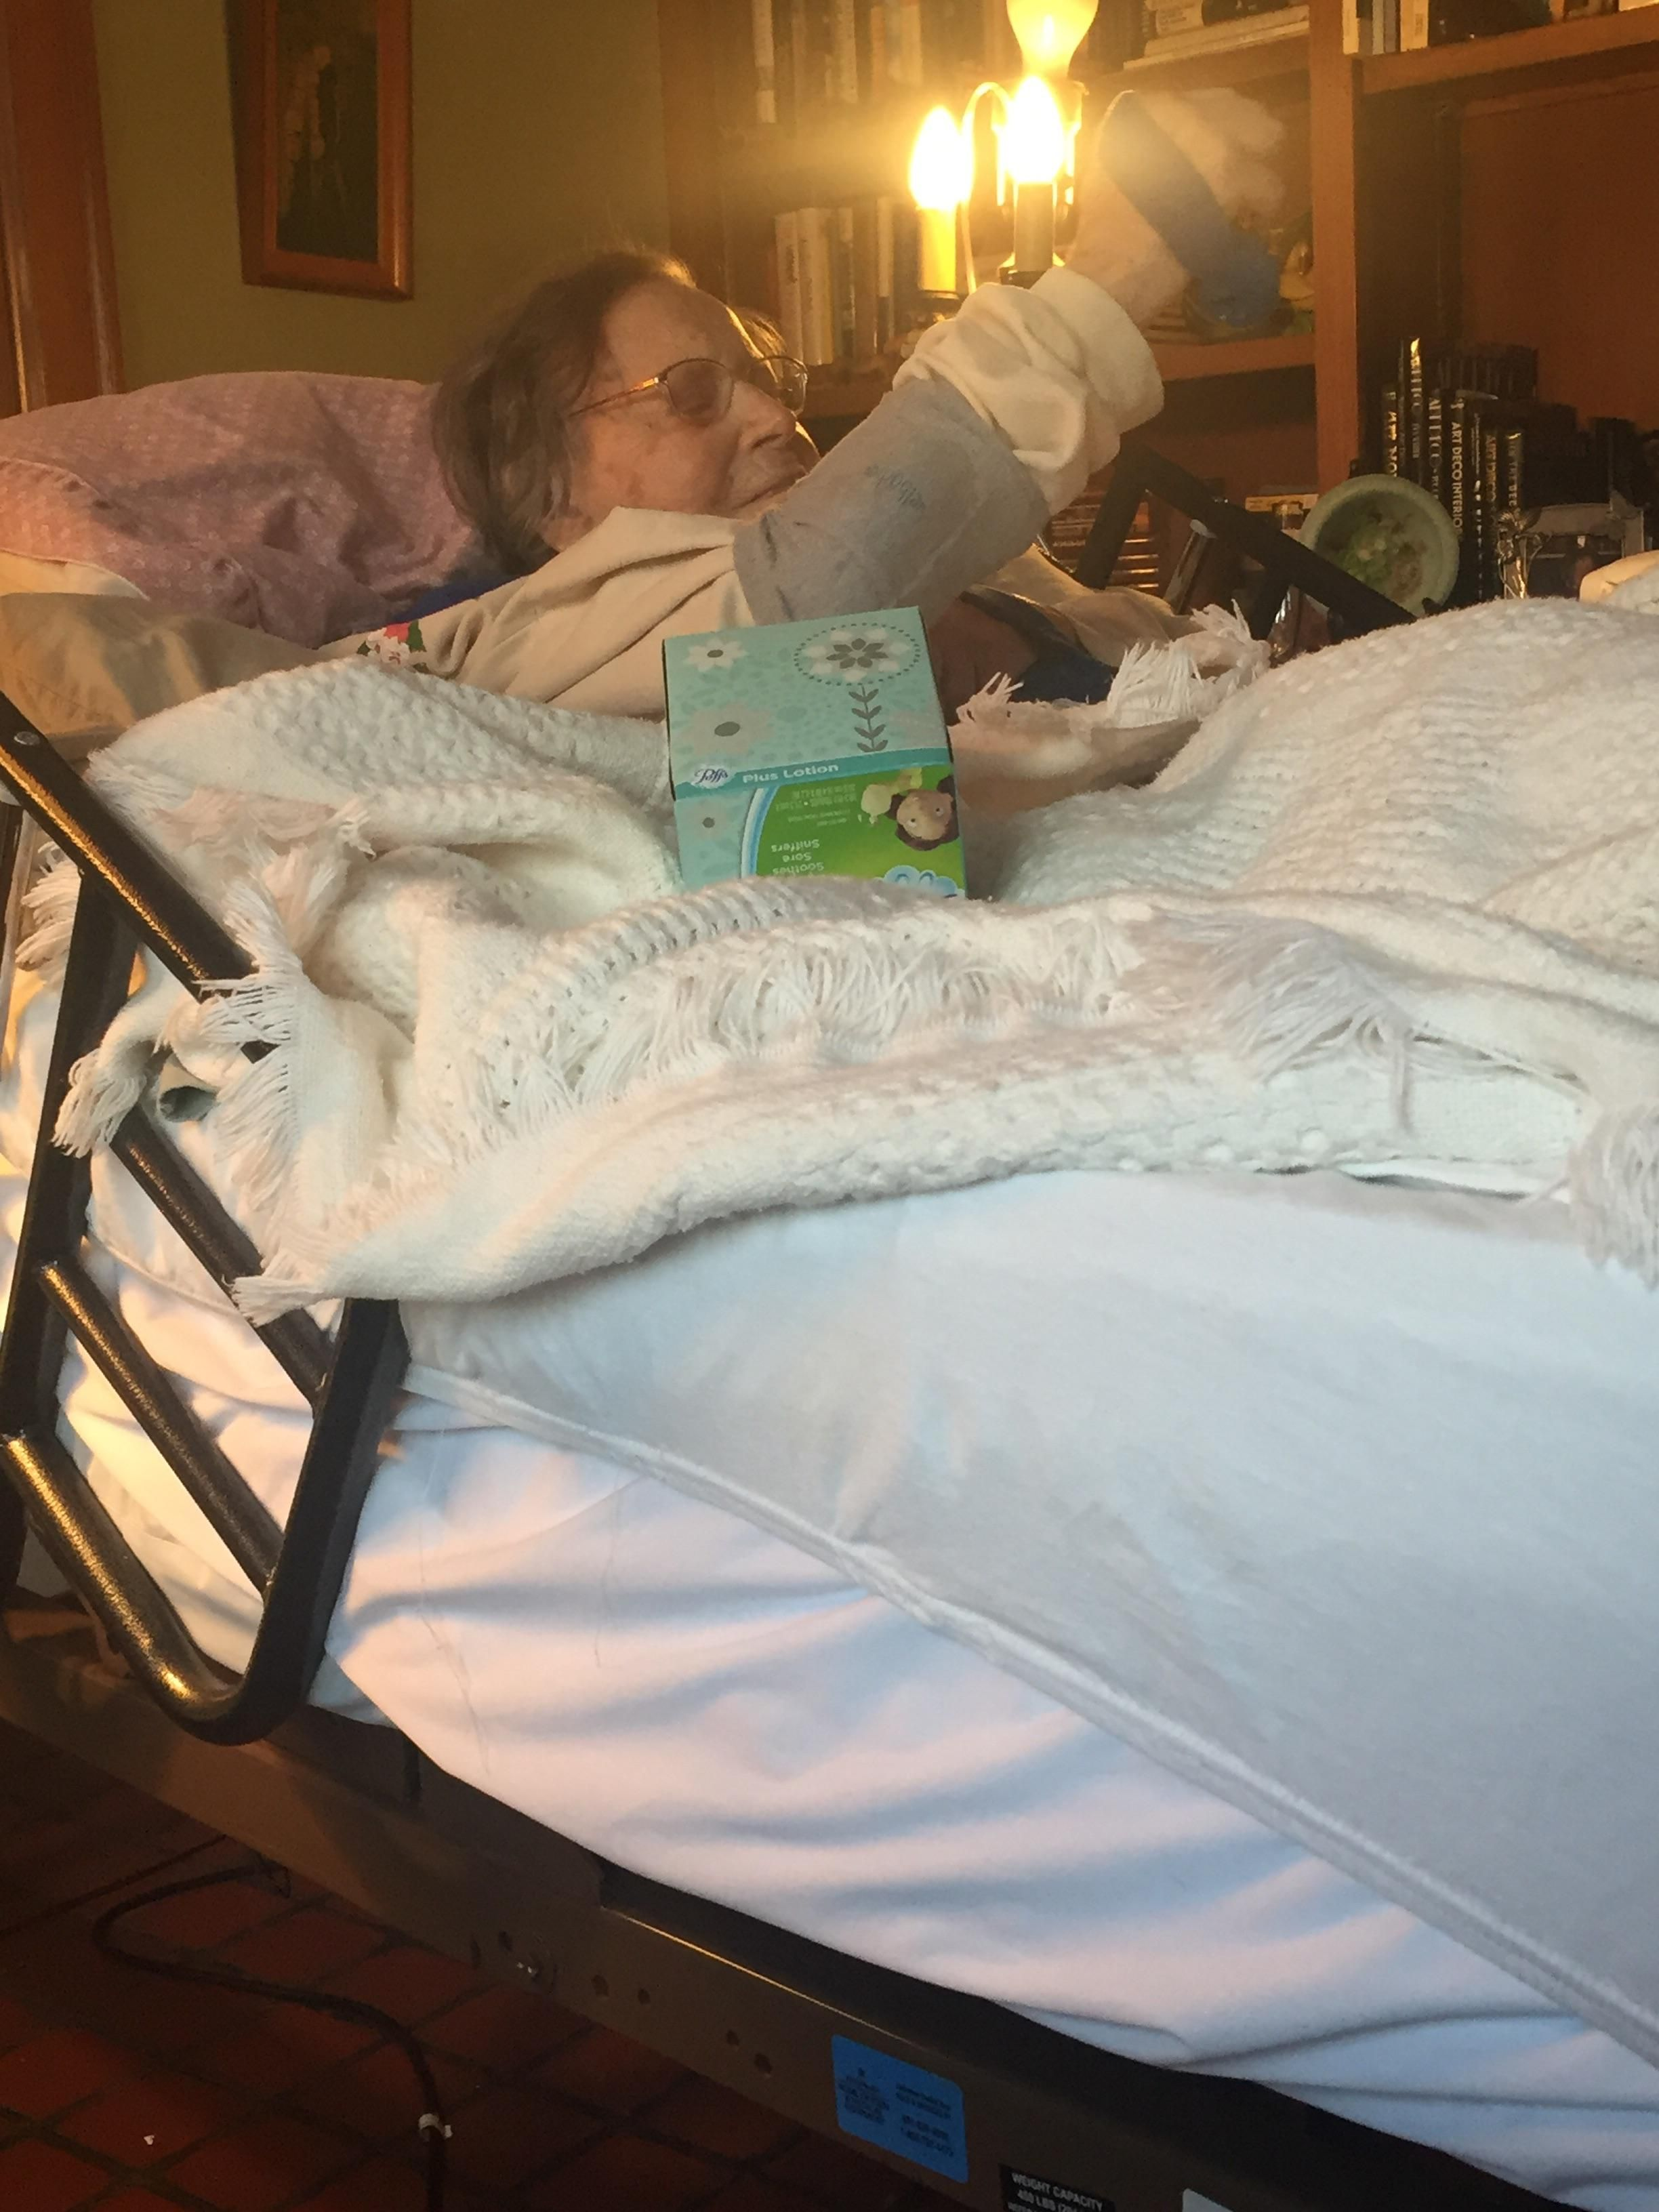 My 104 year old relative exercising in bed! :)